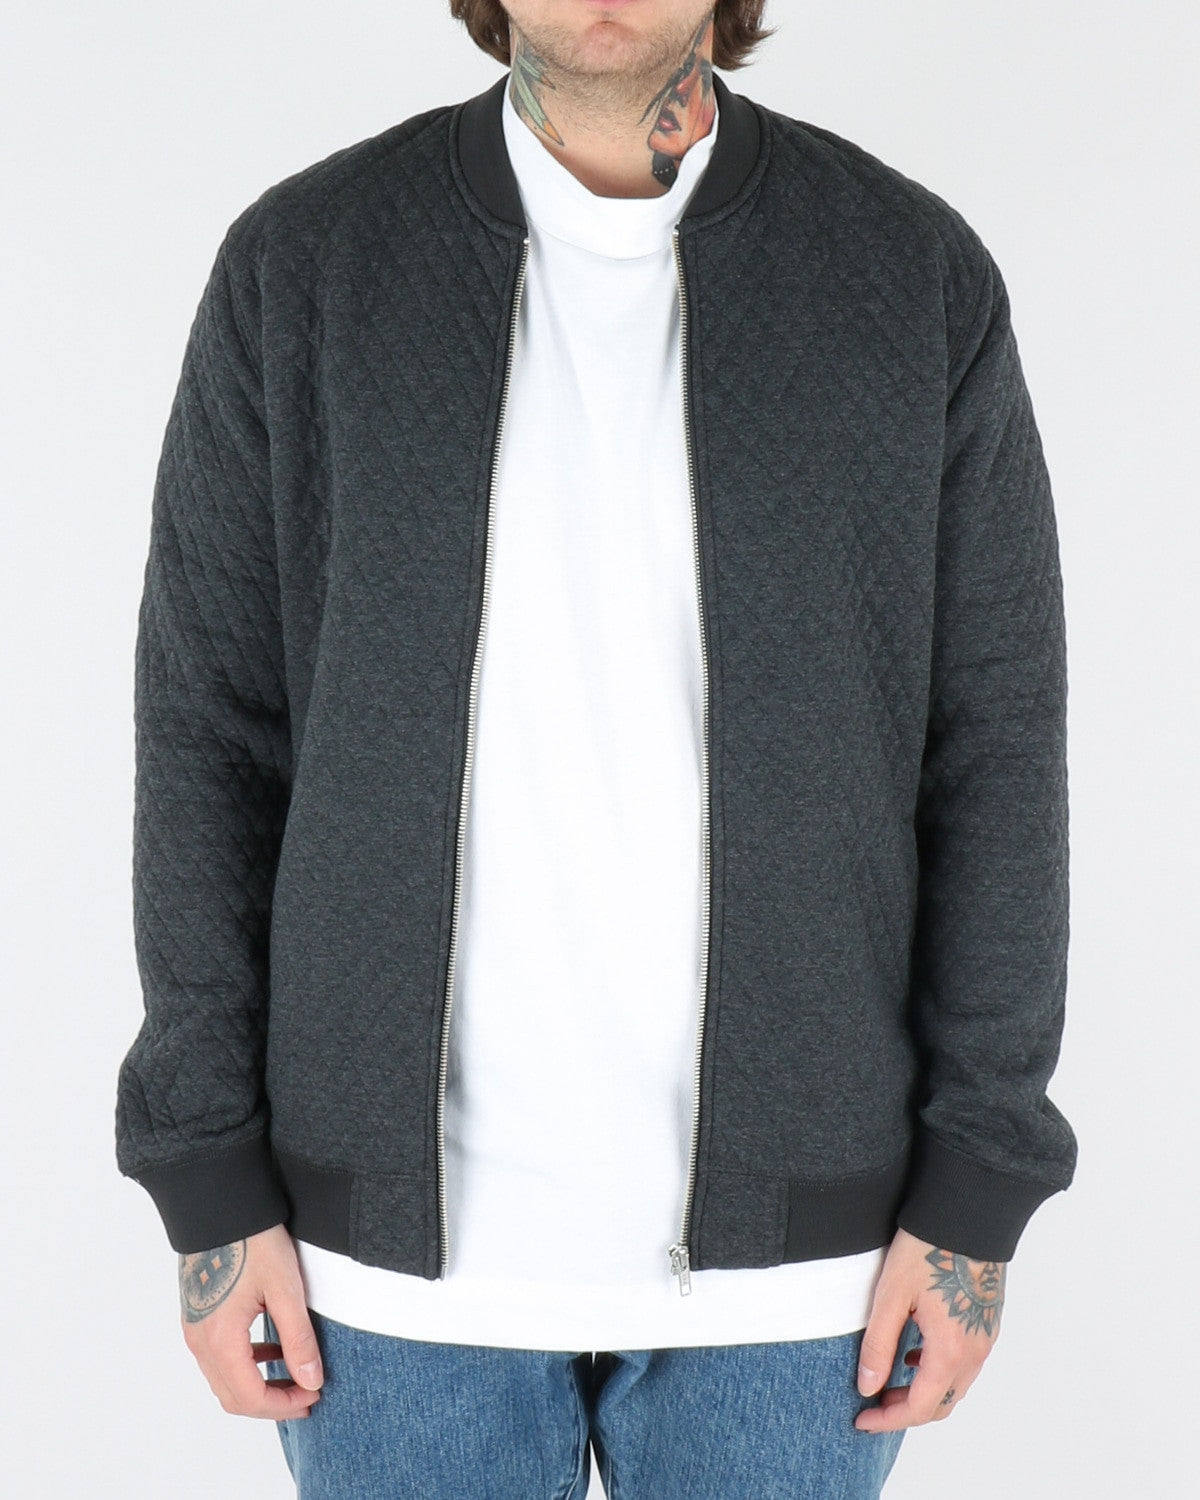 wac we are copenhagen_lens zip sweatshirt_dark grey melange_view_1_3